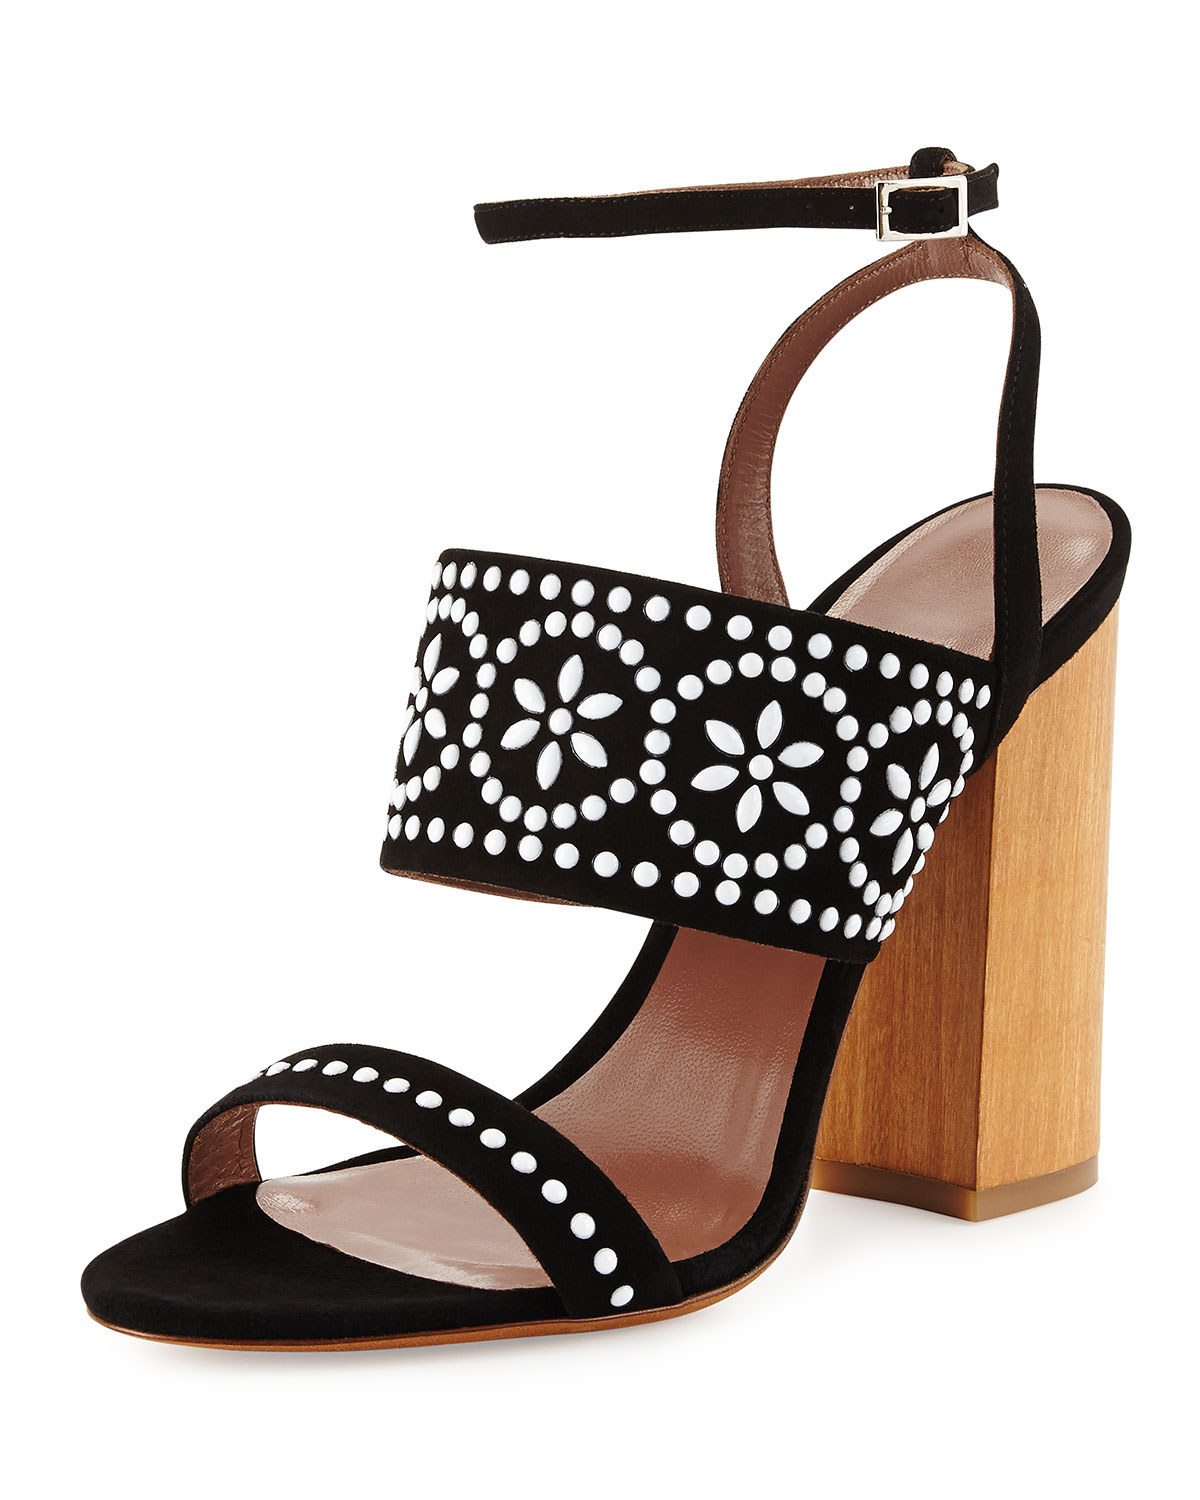 new arrival for sale extremely Tabitha Simmons Beaded Slide Sandals t0WprZtP